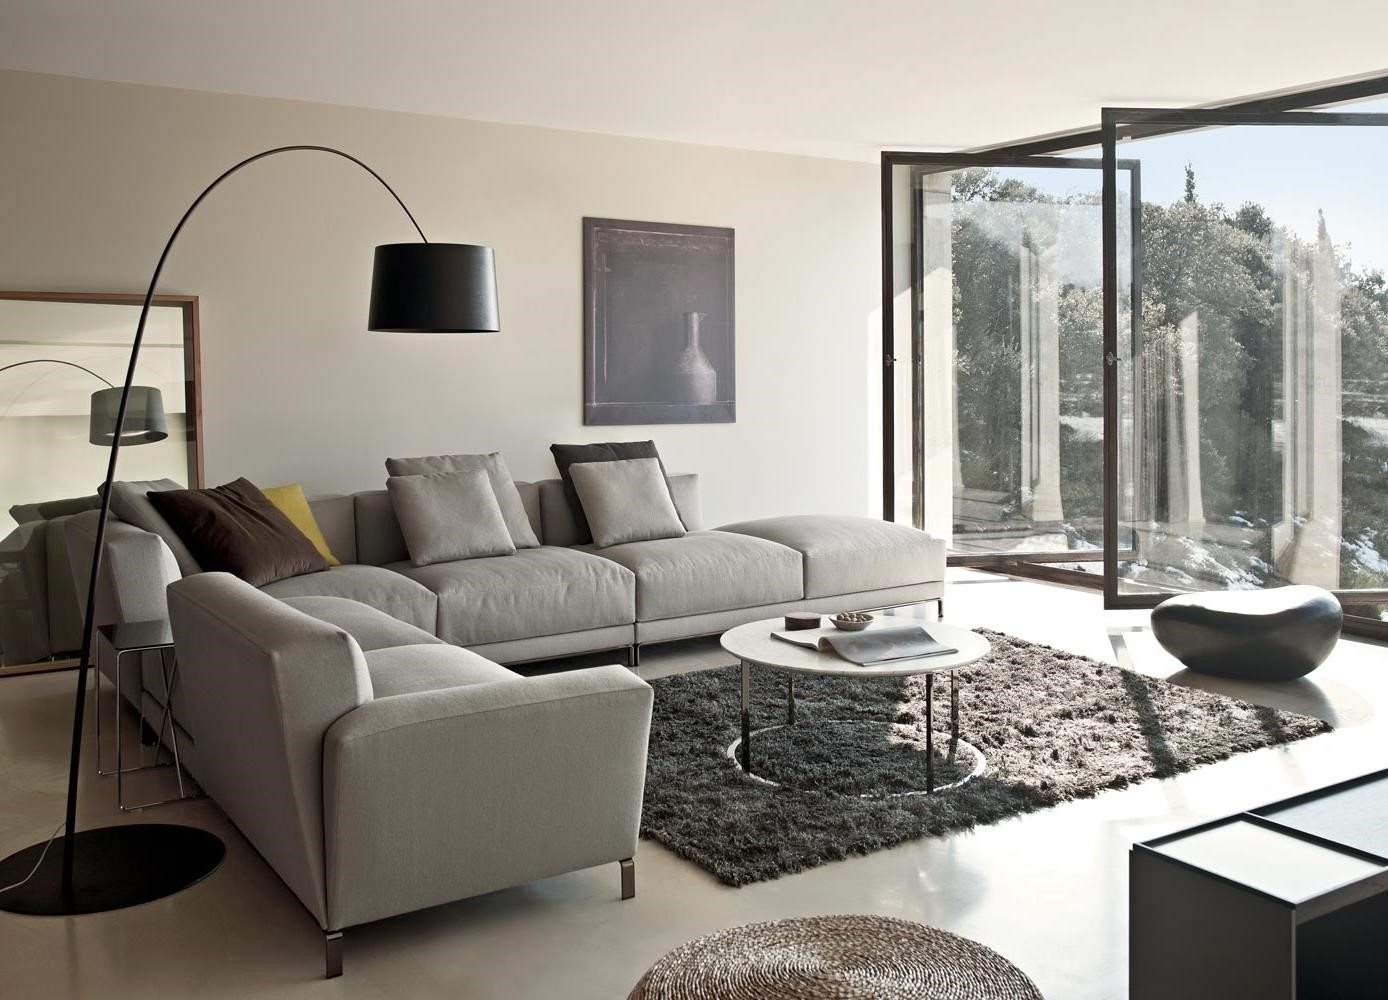 Uncategorized : Apartment Sectional Sofa Within Imposing Sofas For Apartment Sectional Sofas With Chaise (Photo 4 of 10)